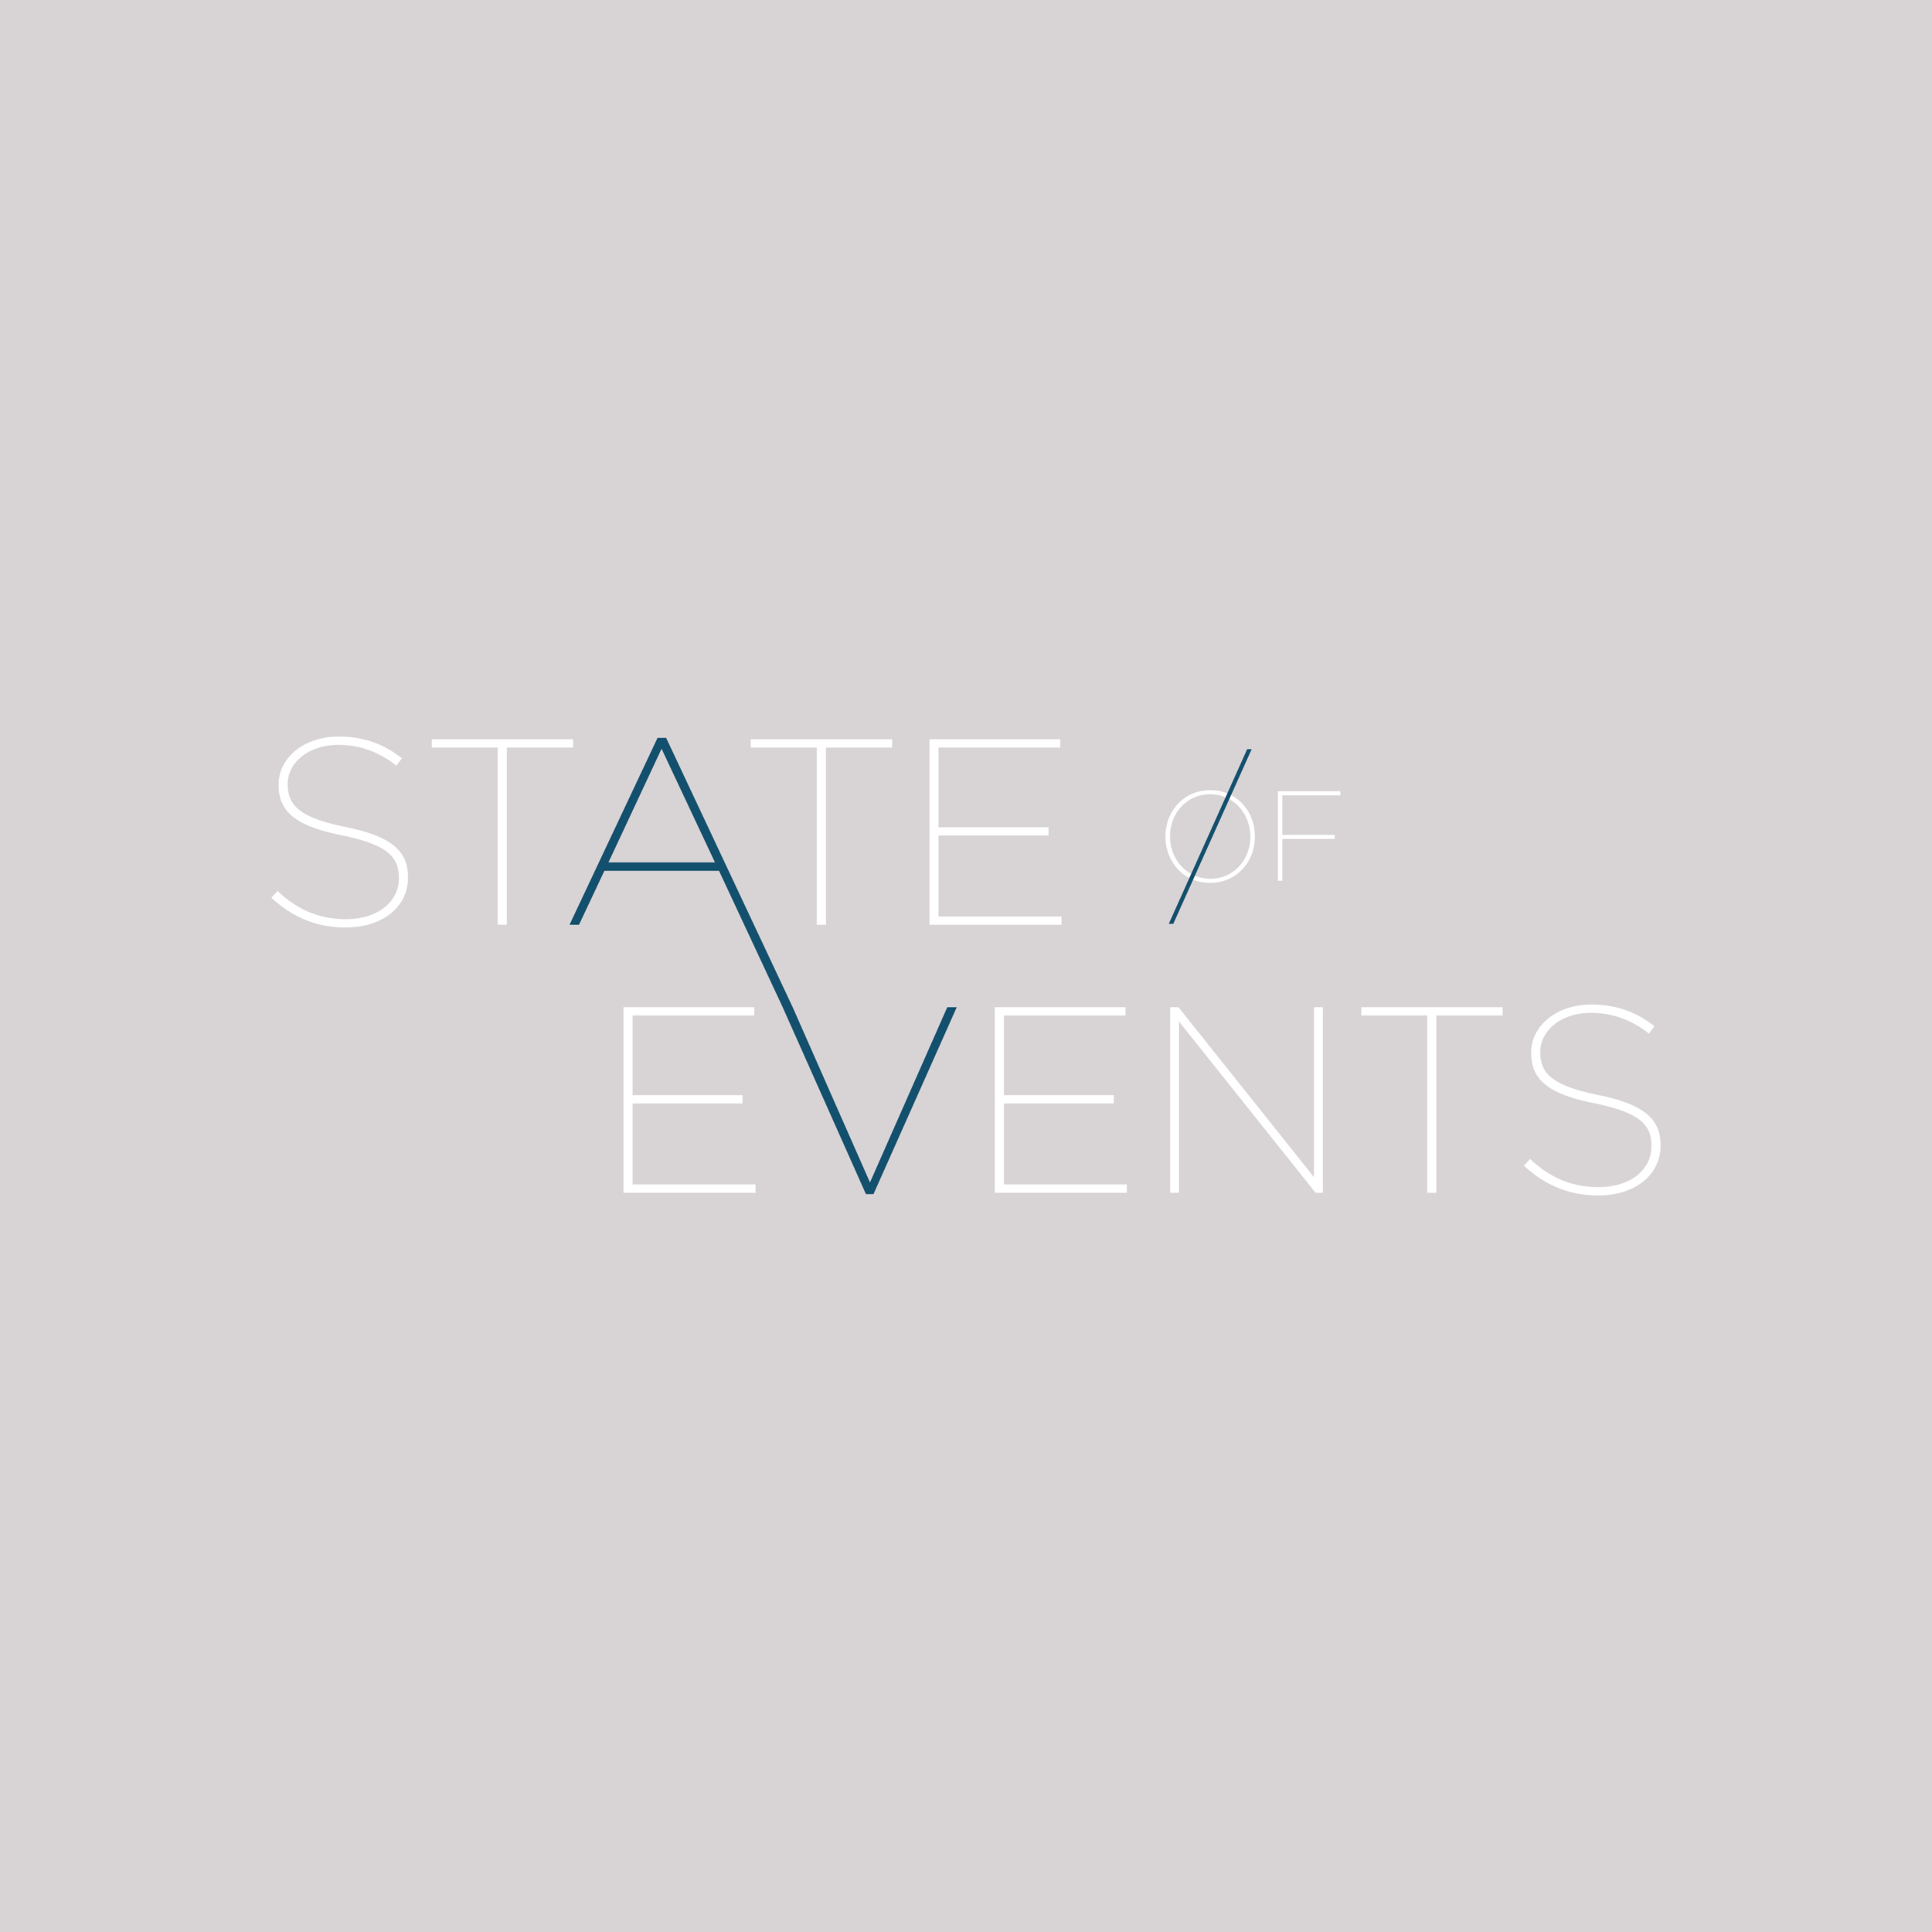 State Of Events